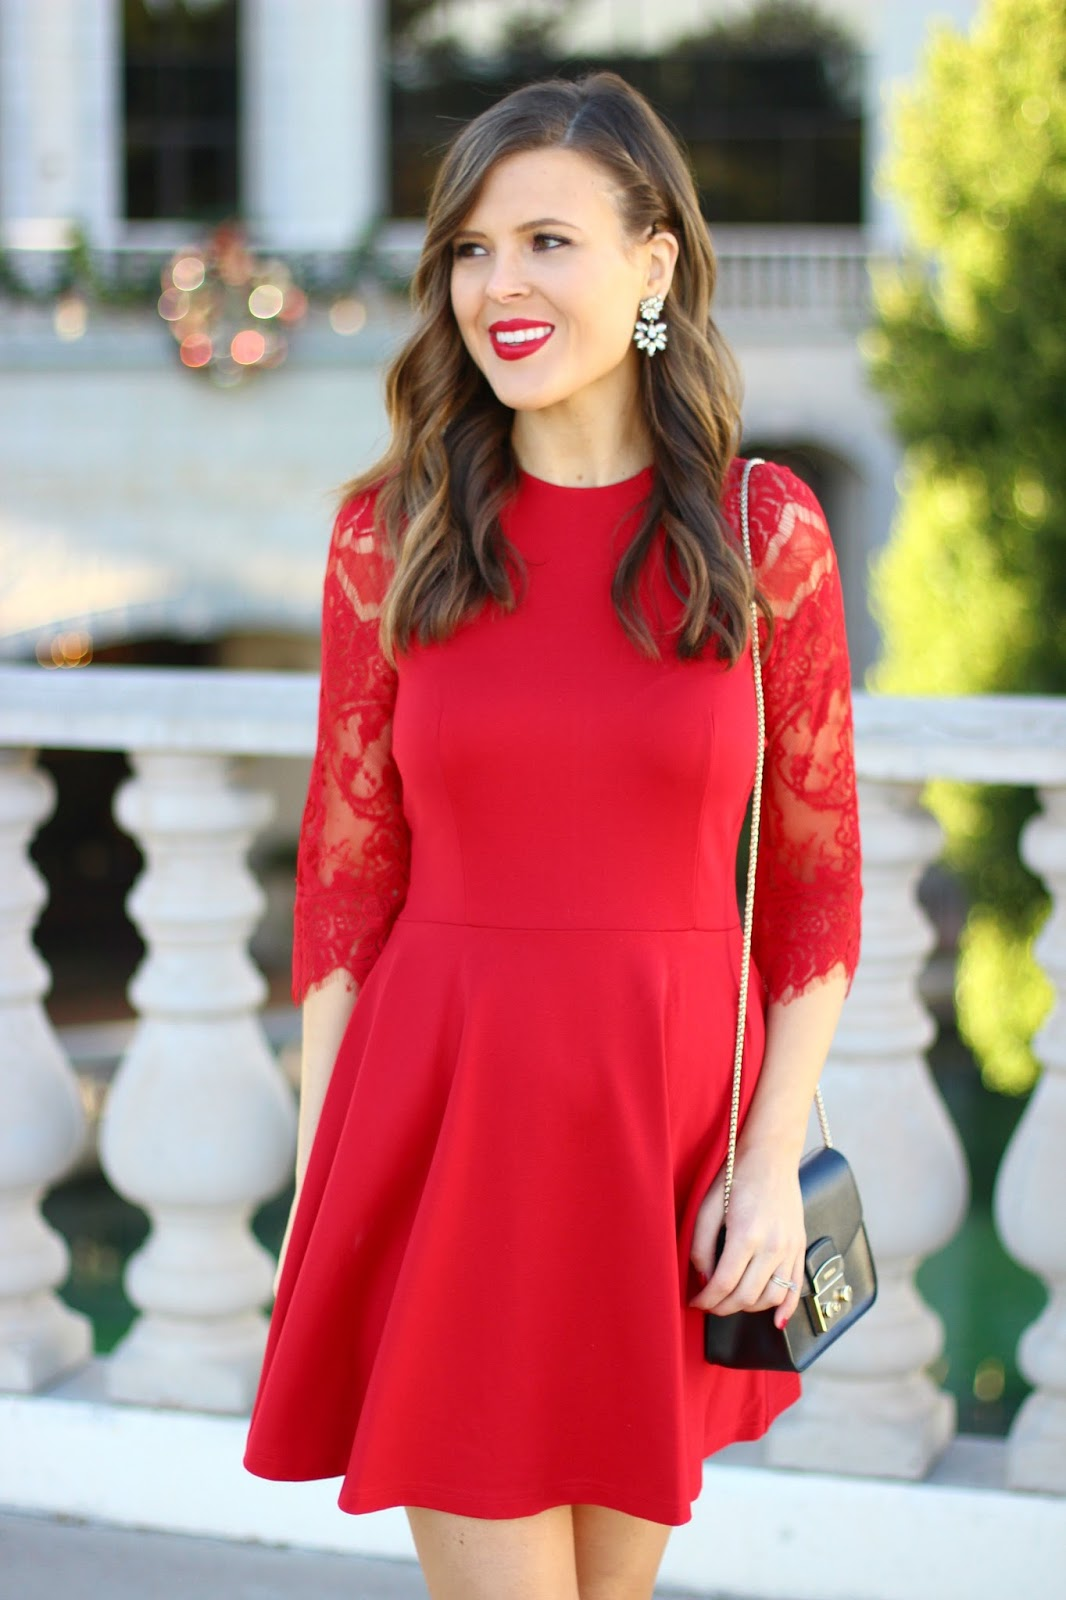 The Perfect Holiday Dress